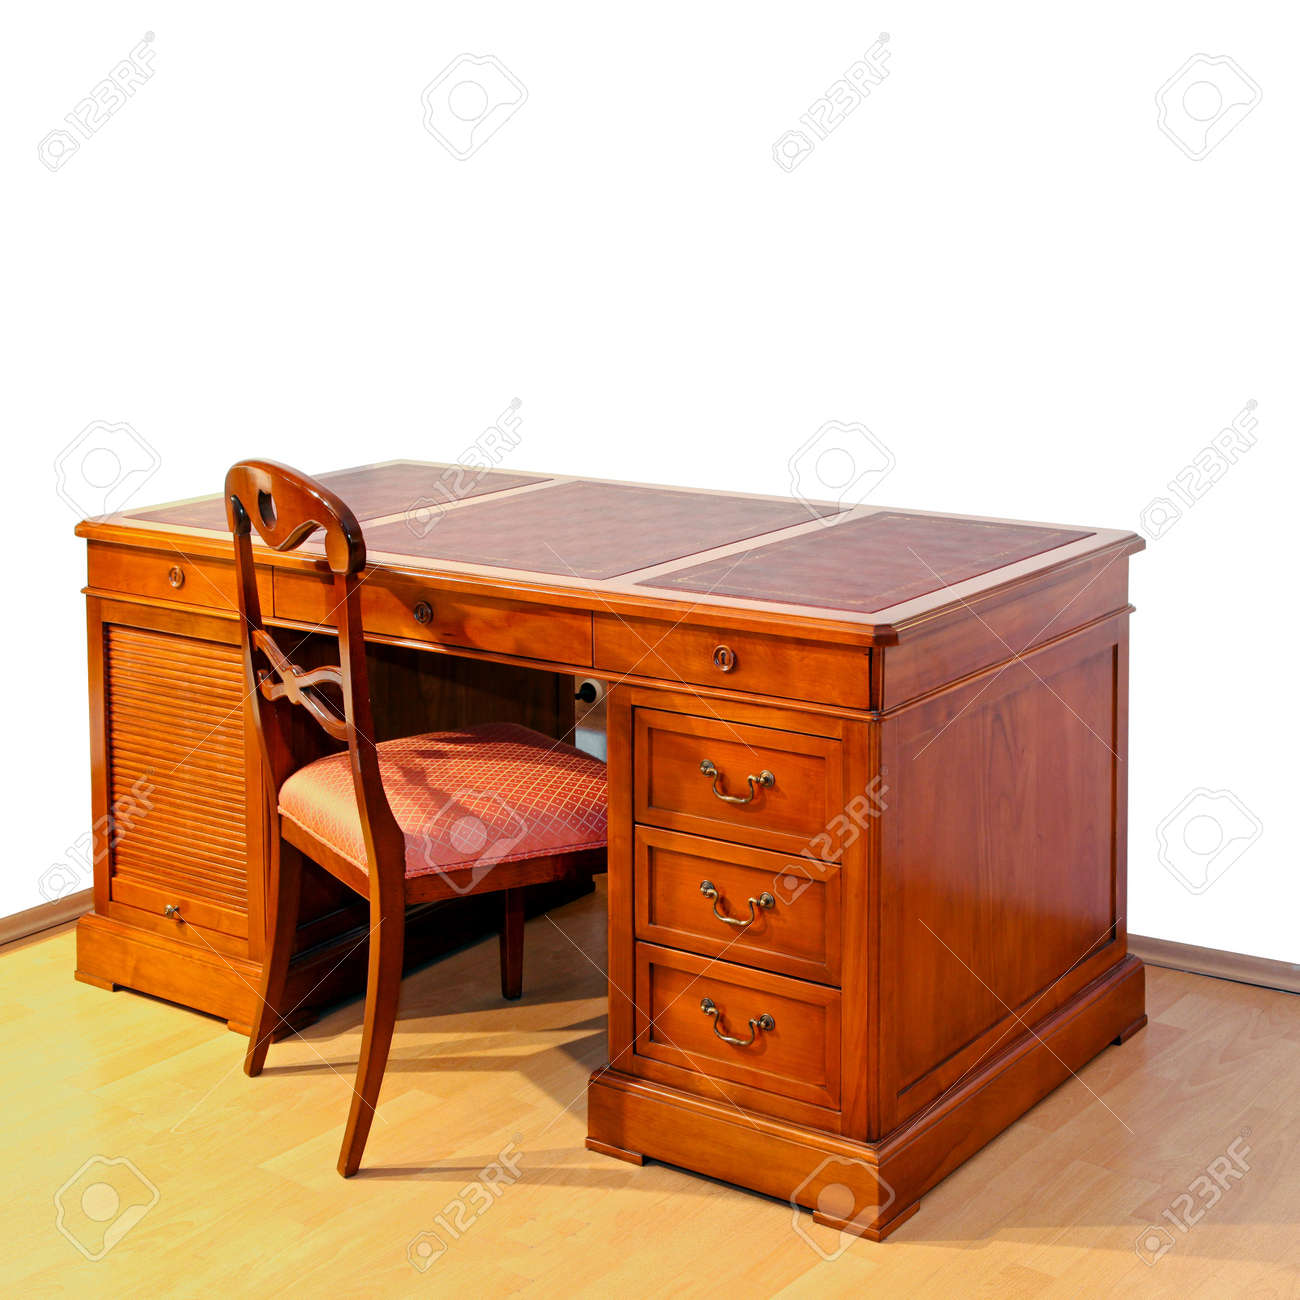 Very old wooden work desk with chair Stock Photo - 9243149 - Very Old Wooden Work Desk With Chair Stock Photo, Picture And